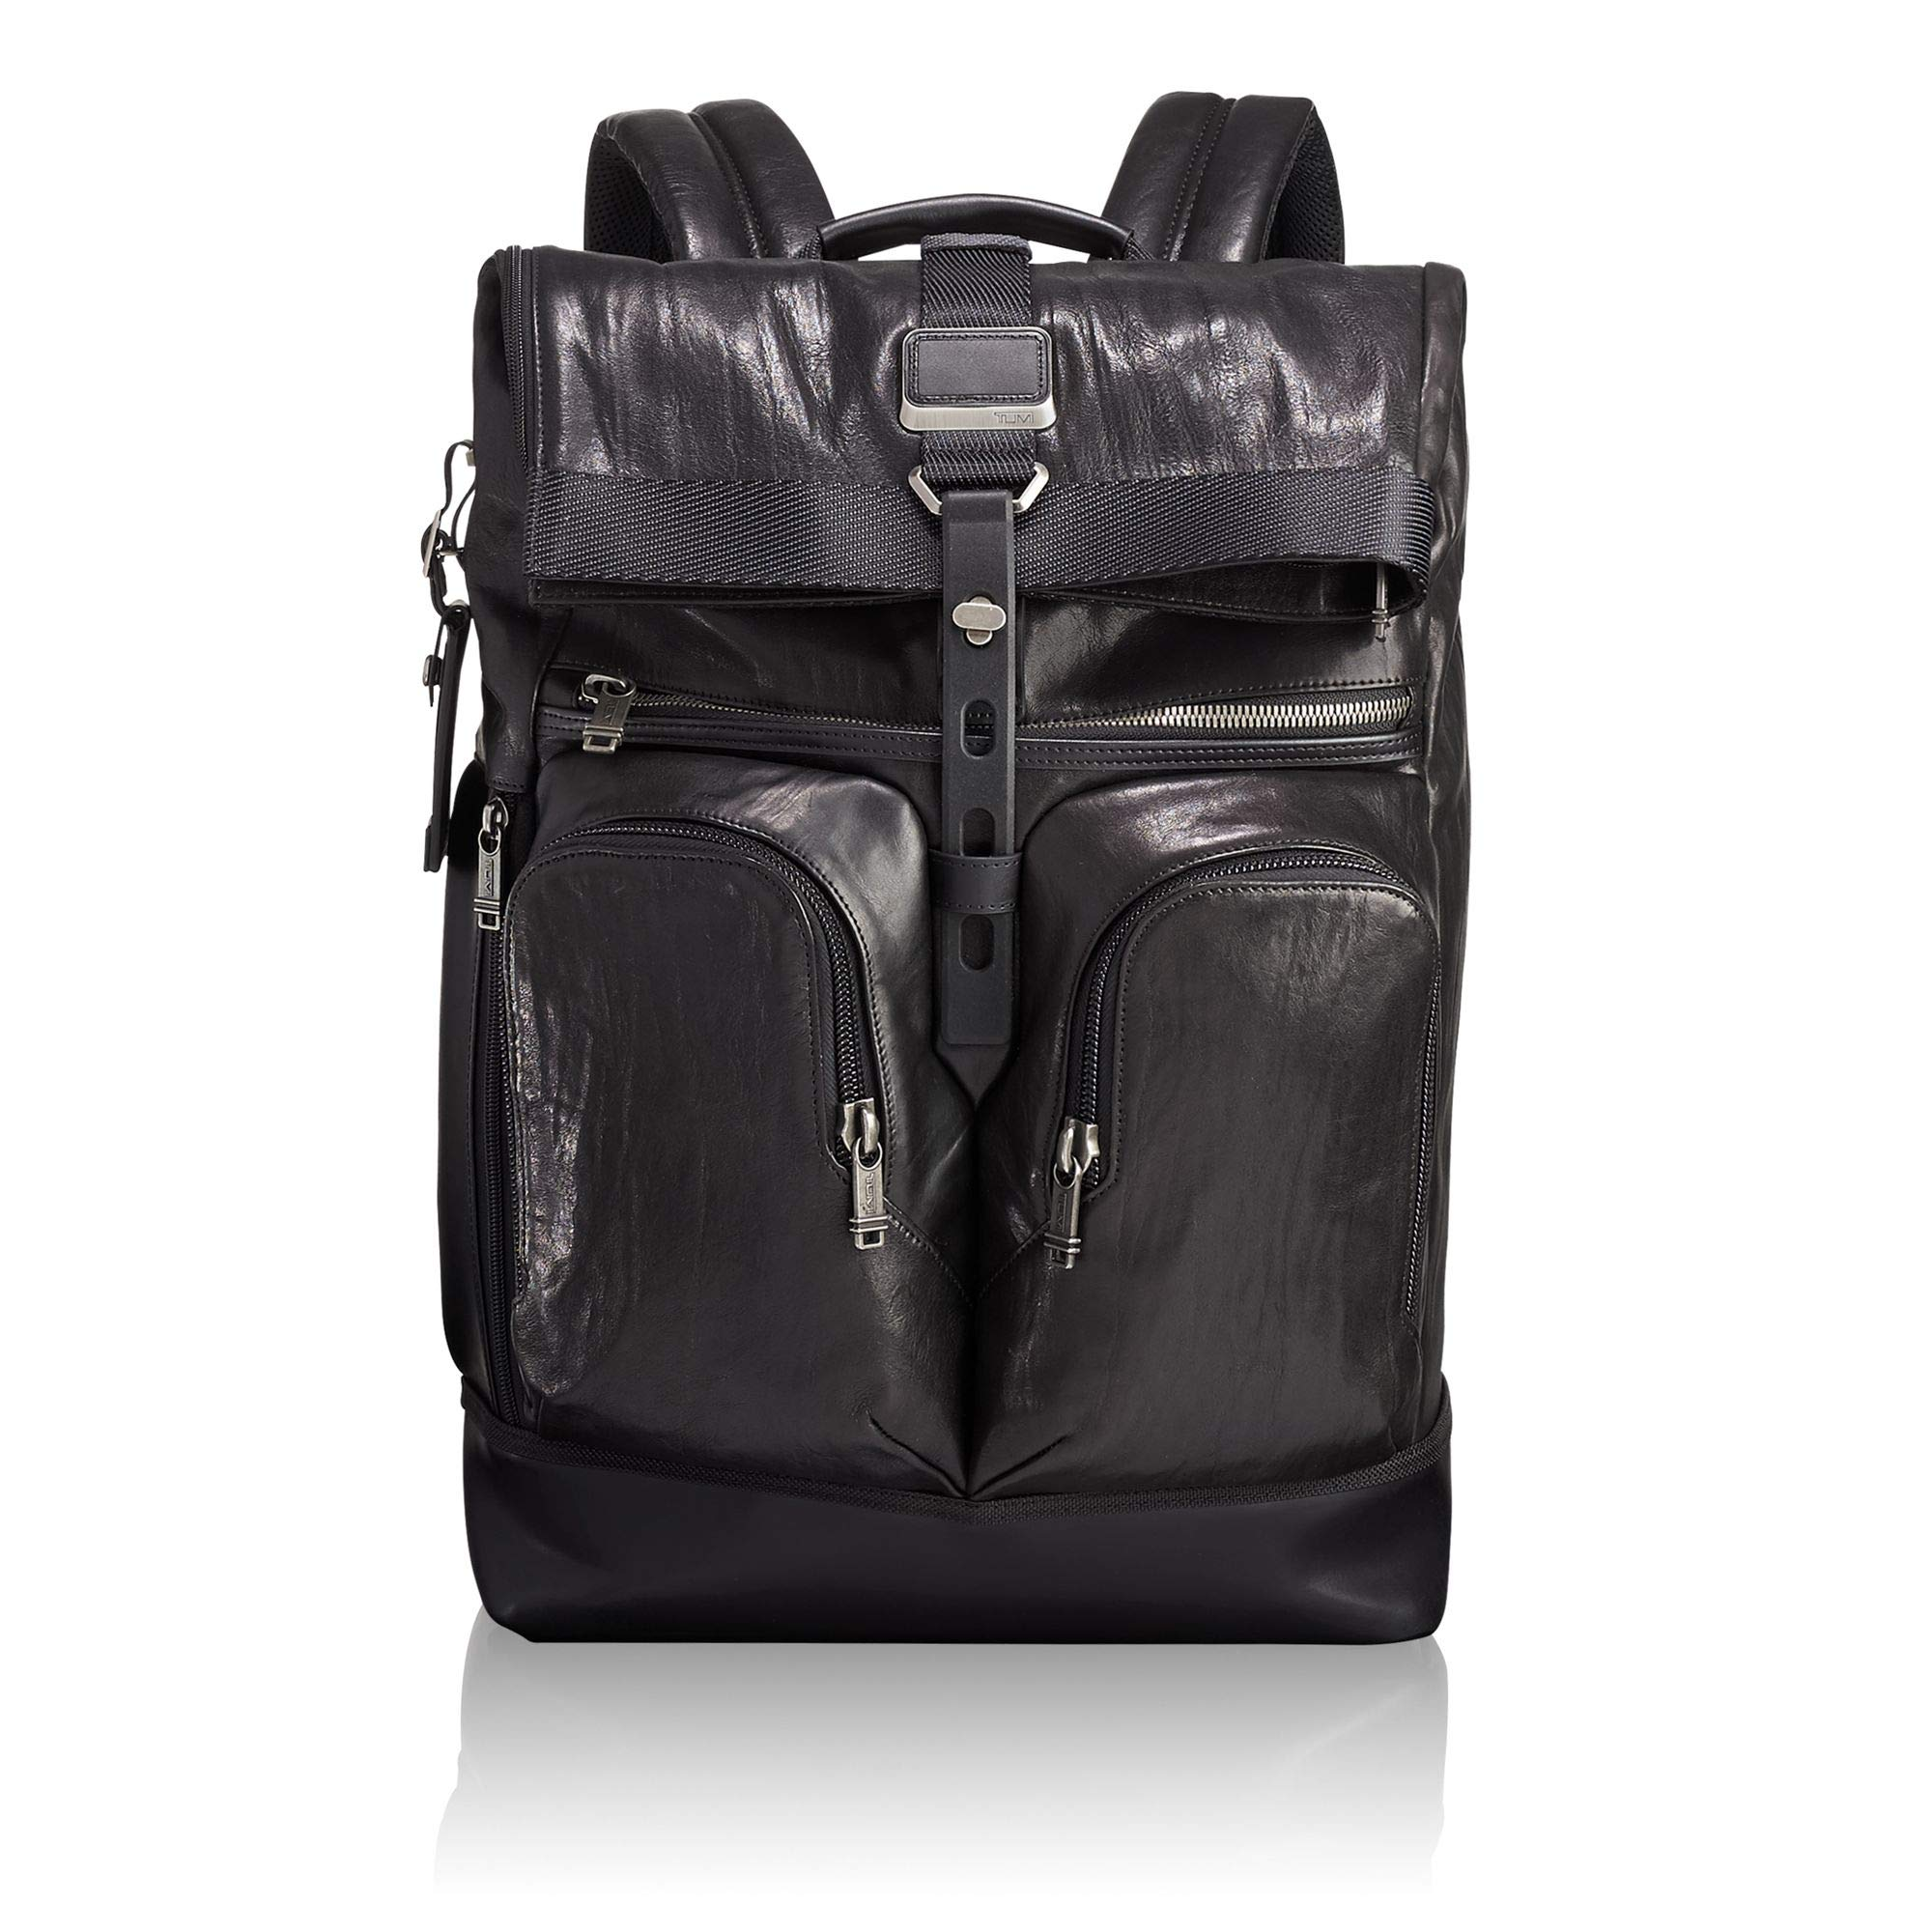 TUMI Men's Alpha Bravo London Roll Top Leather Backpack, Black, One Size